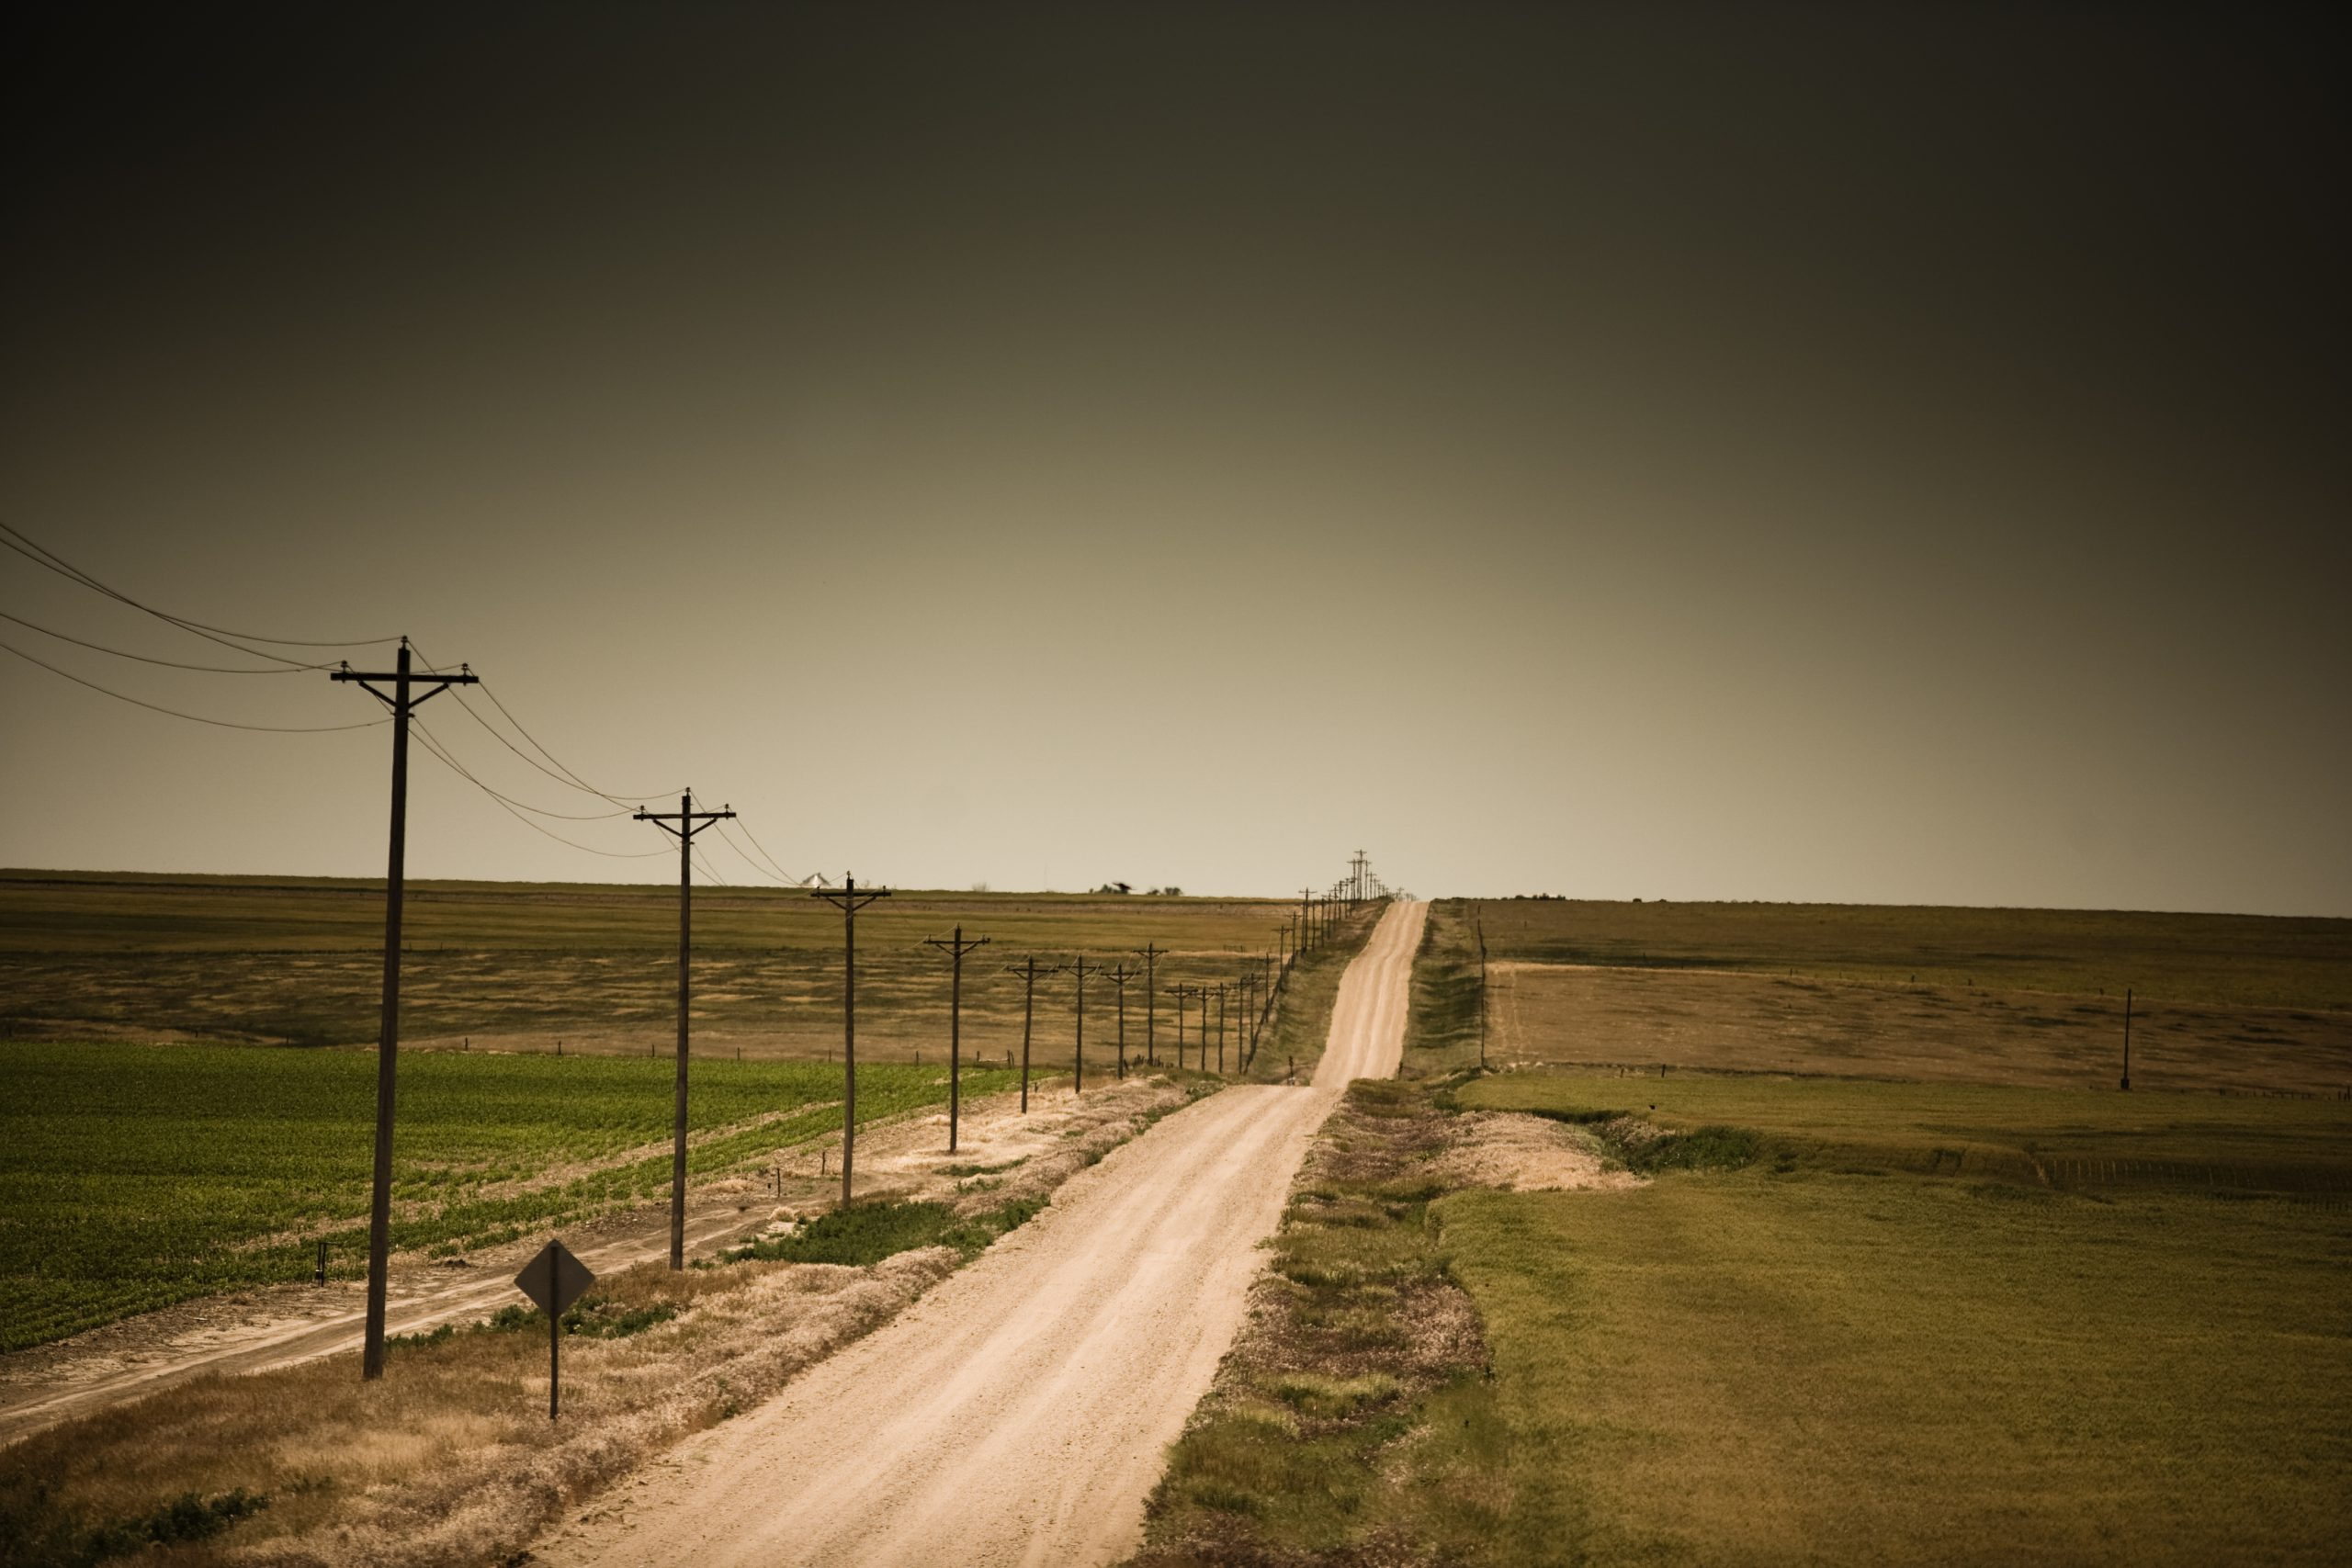 Kansas electric rates are not regionally competitive — the KCC should address this problem